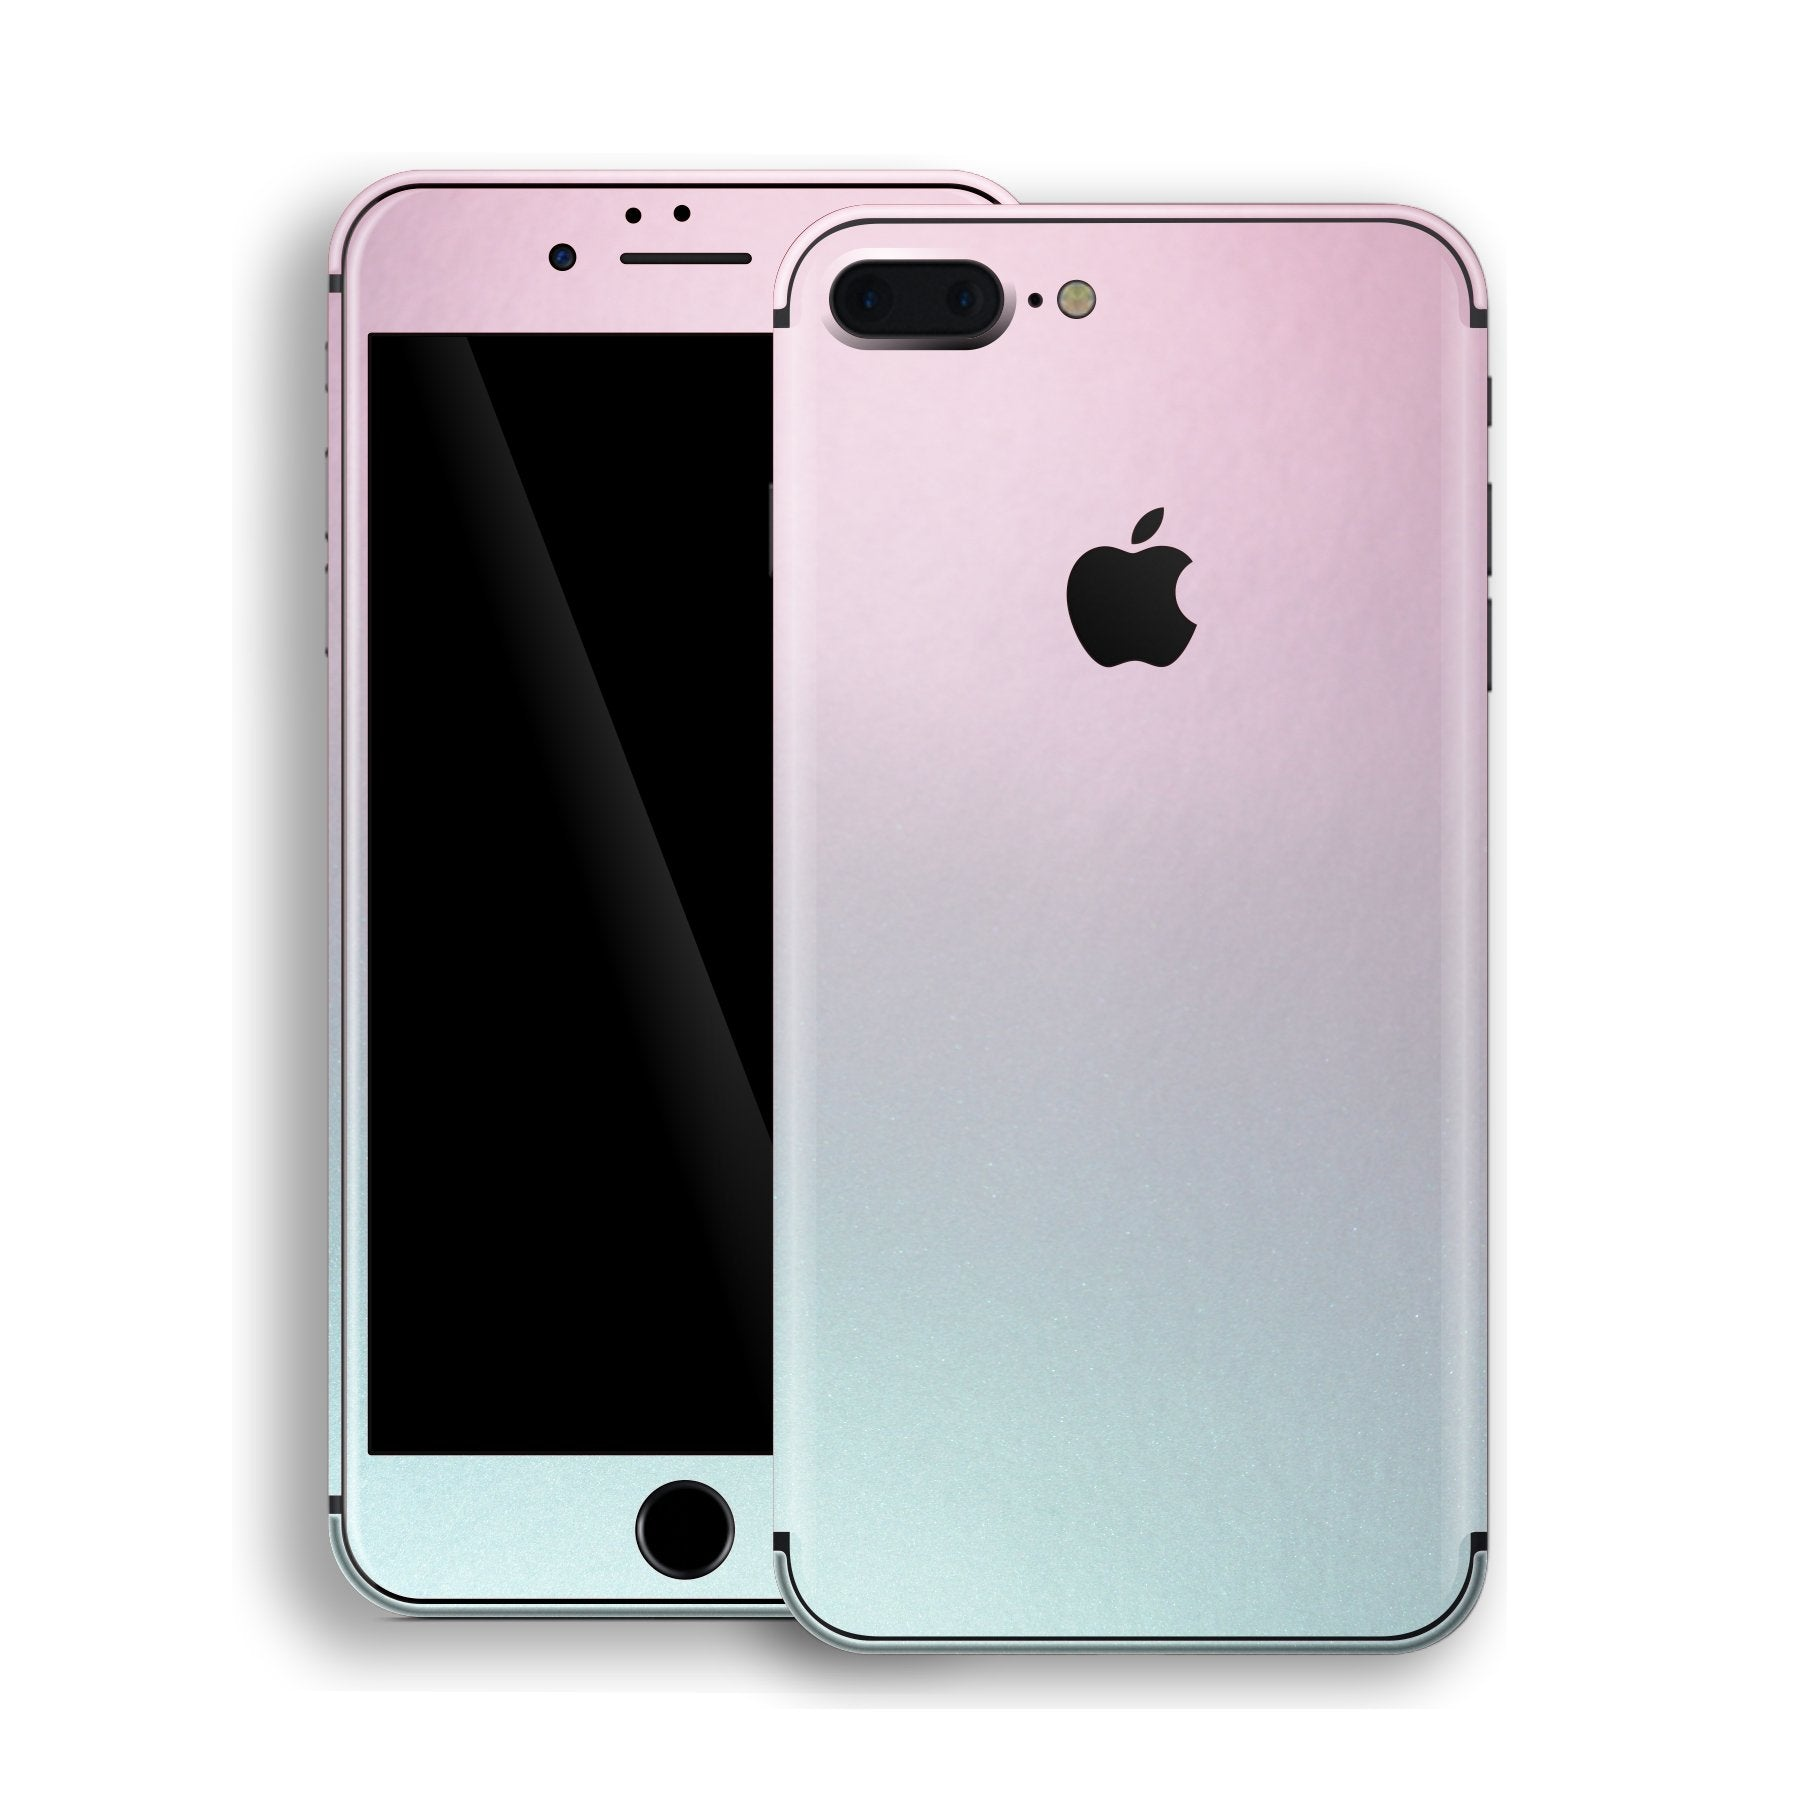 81264ded4e0ee9 iPhone 8 Plus Chameleon Amethyst Colour-Changing Skin, Decal, Wrap,  Protector,